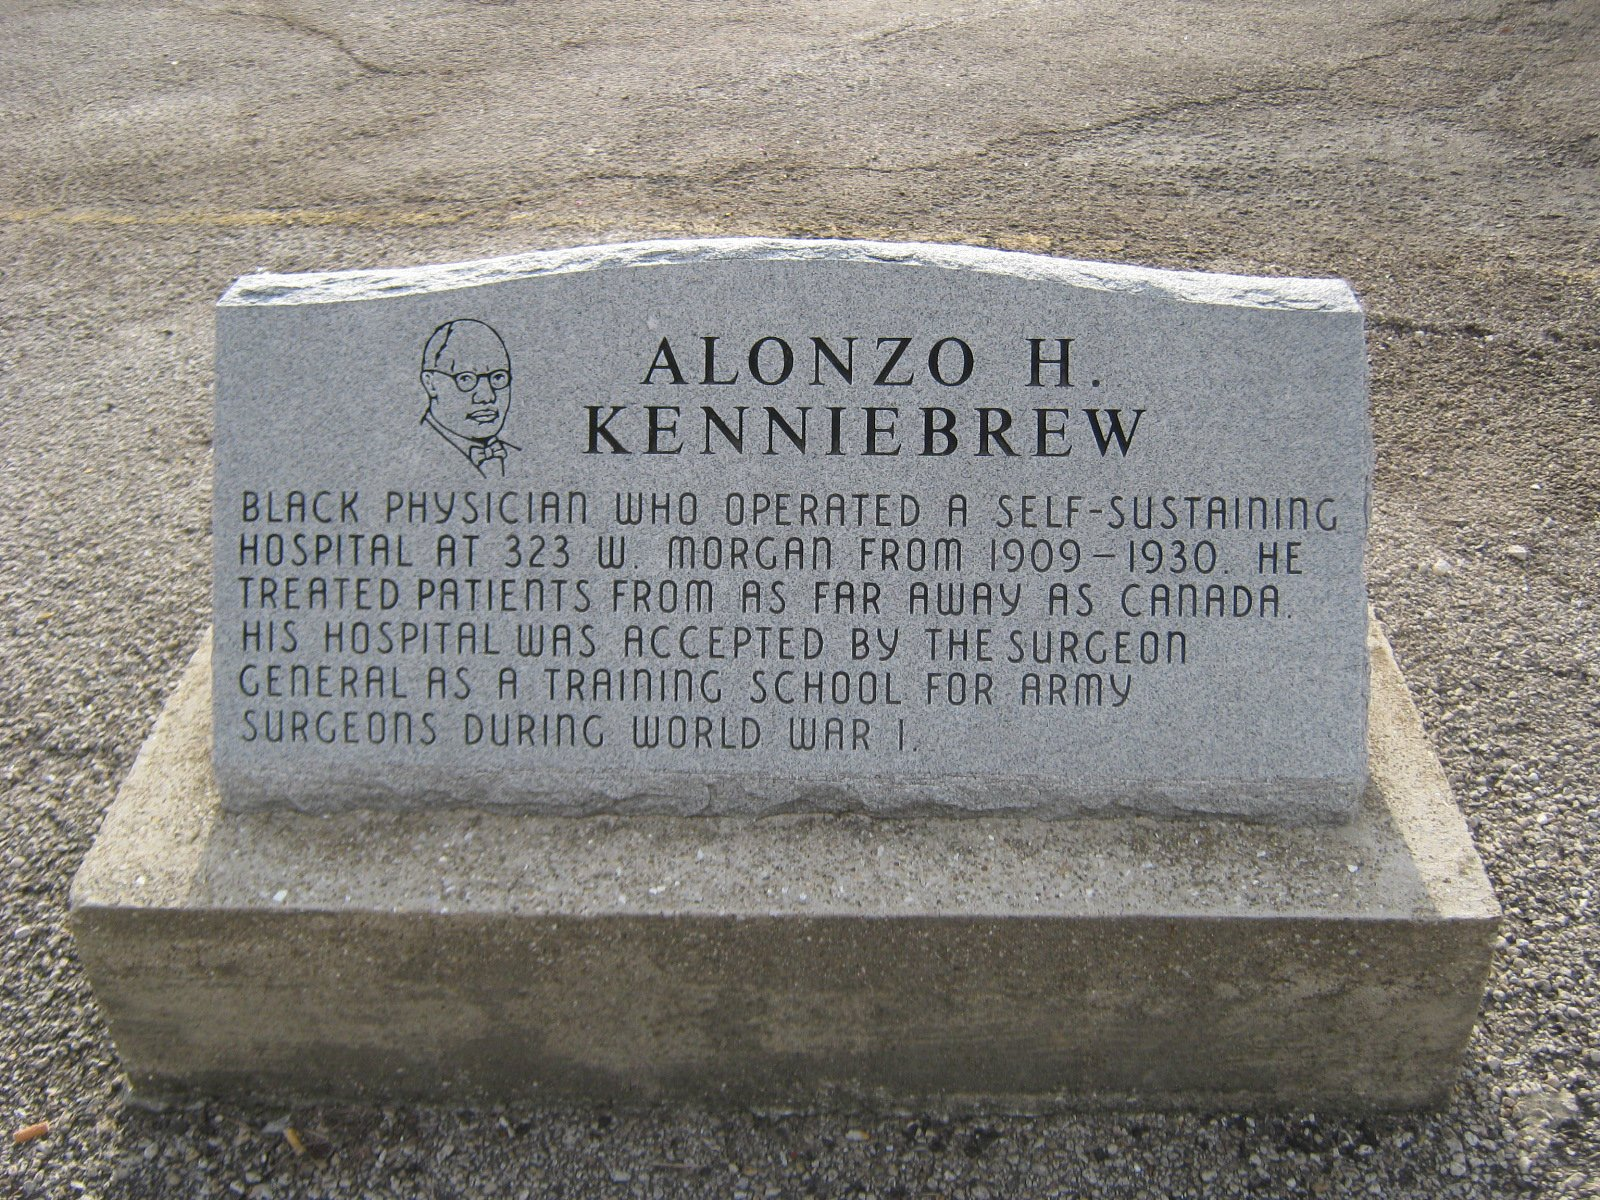 A memorial stone built for Dr. Alonzo Kenniebrew.